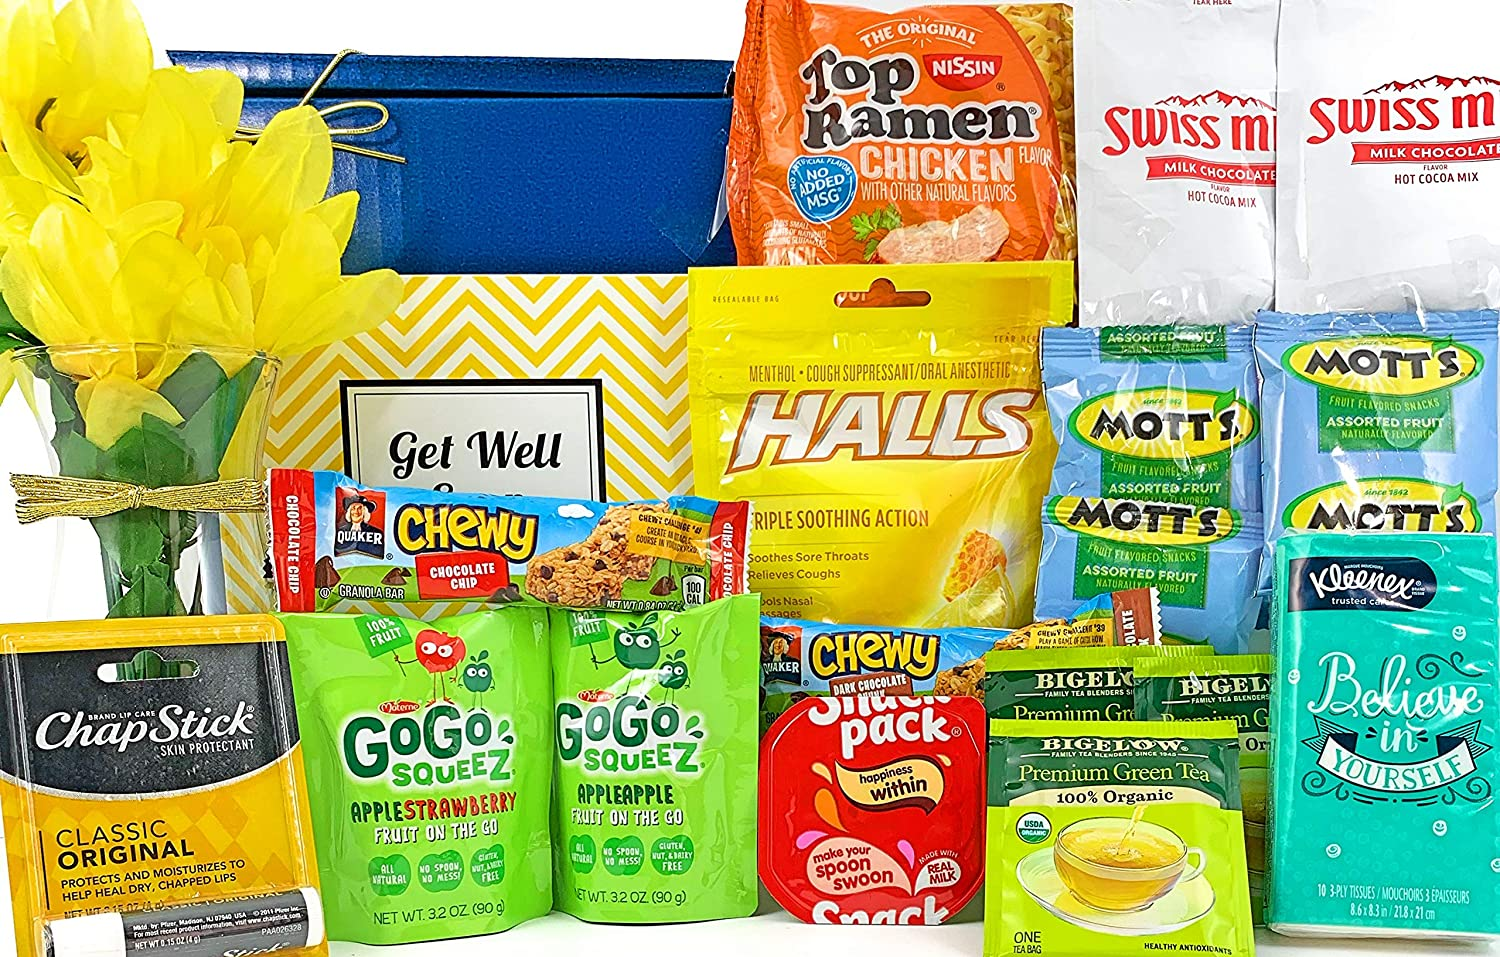 Get Well Gift Box Basket II - For Cold/Flu/Illness - Over 2.5 Pounds of Care, Concern, and Love - Great Care Package - Send a Smile Today!